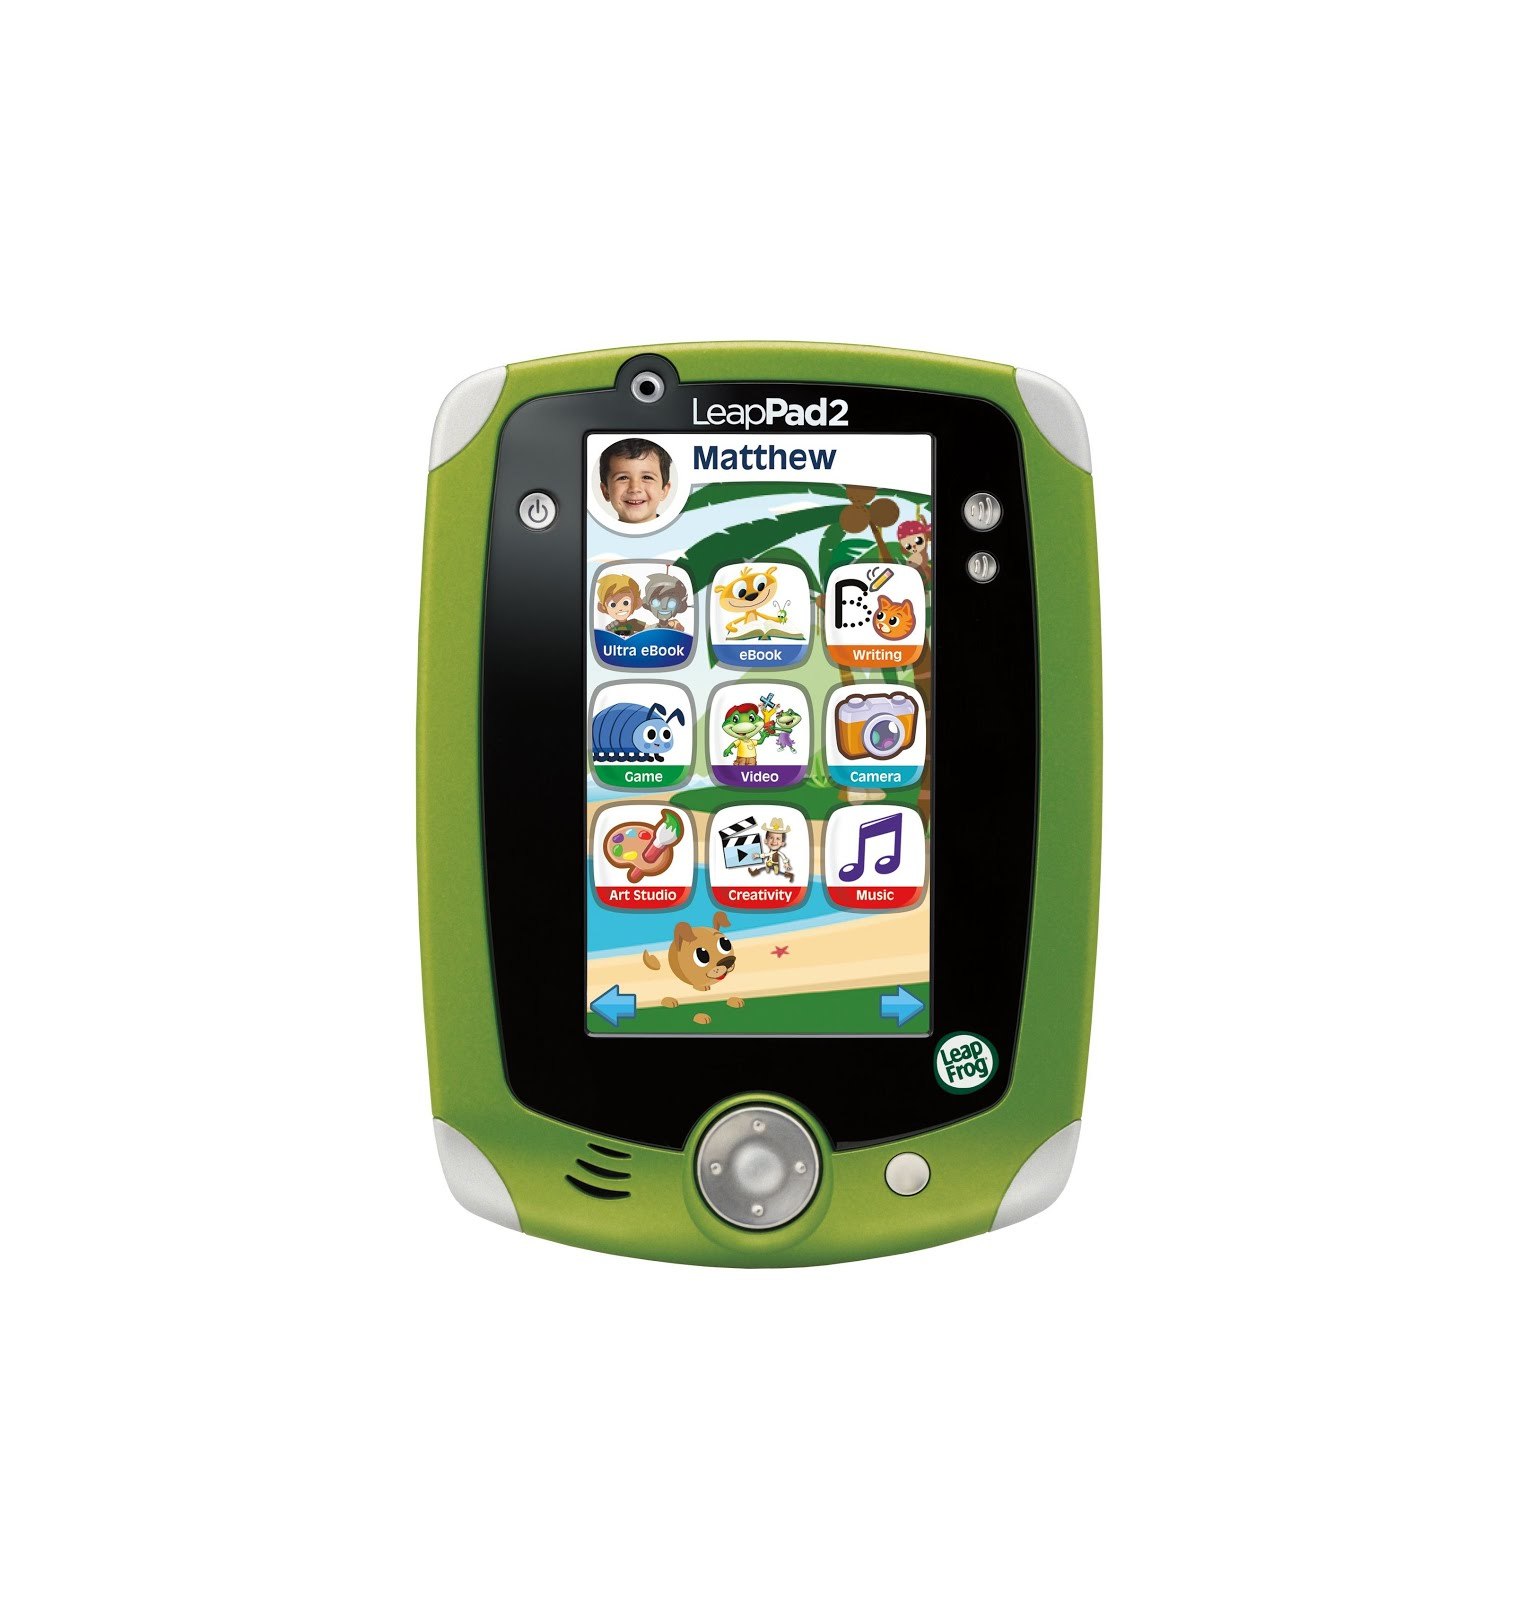 From the classic and much loved LeapPad learning systems to other fun LeapPad games, LeapFrog has much to show. Using a LeapFrog coupon listed just to the left of this description can ensure you're getting a good deal on your purchase.